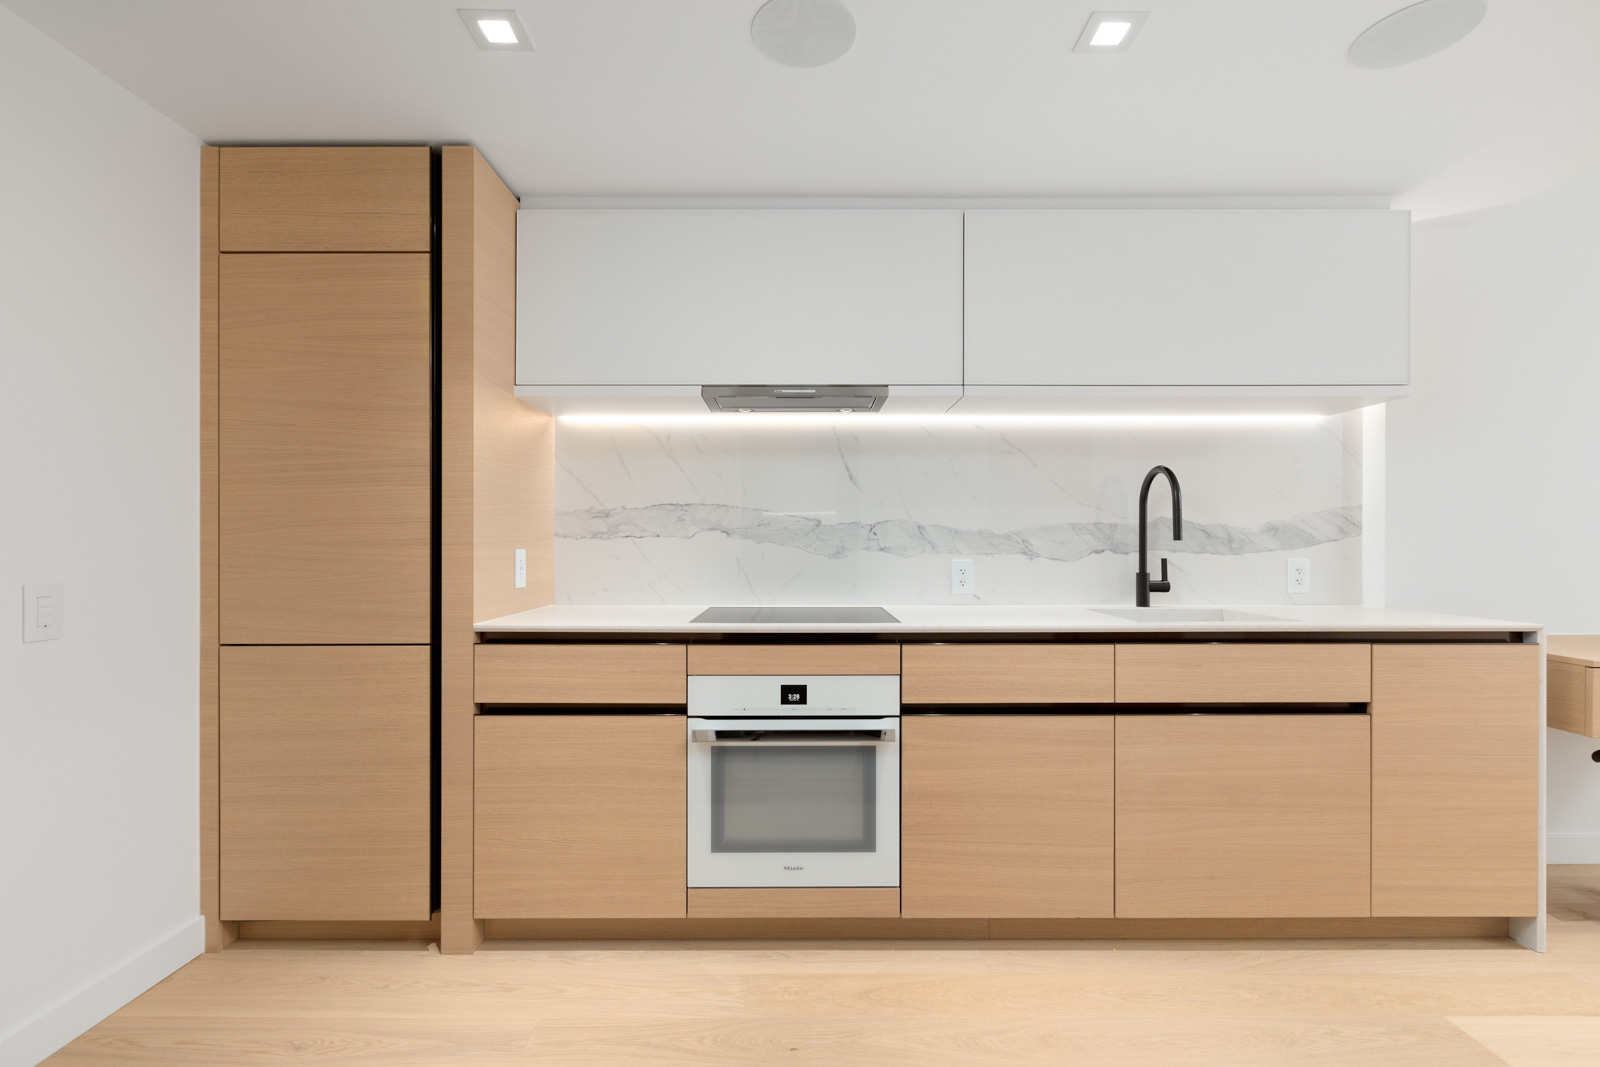 kitchen in brand new cardero building designed by henriquez partners architects in coal harbour in downtown vancouver